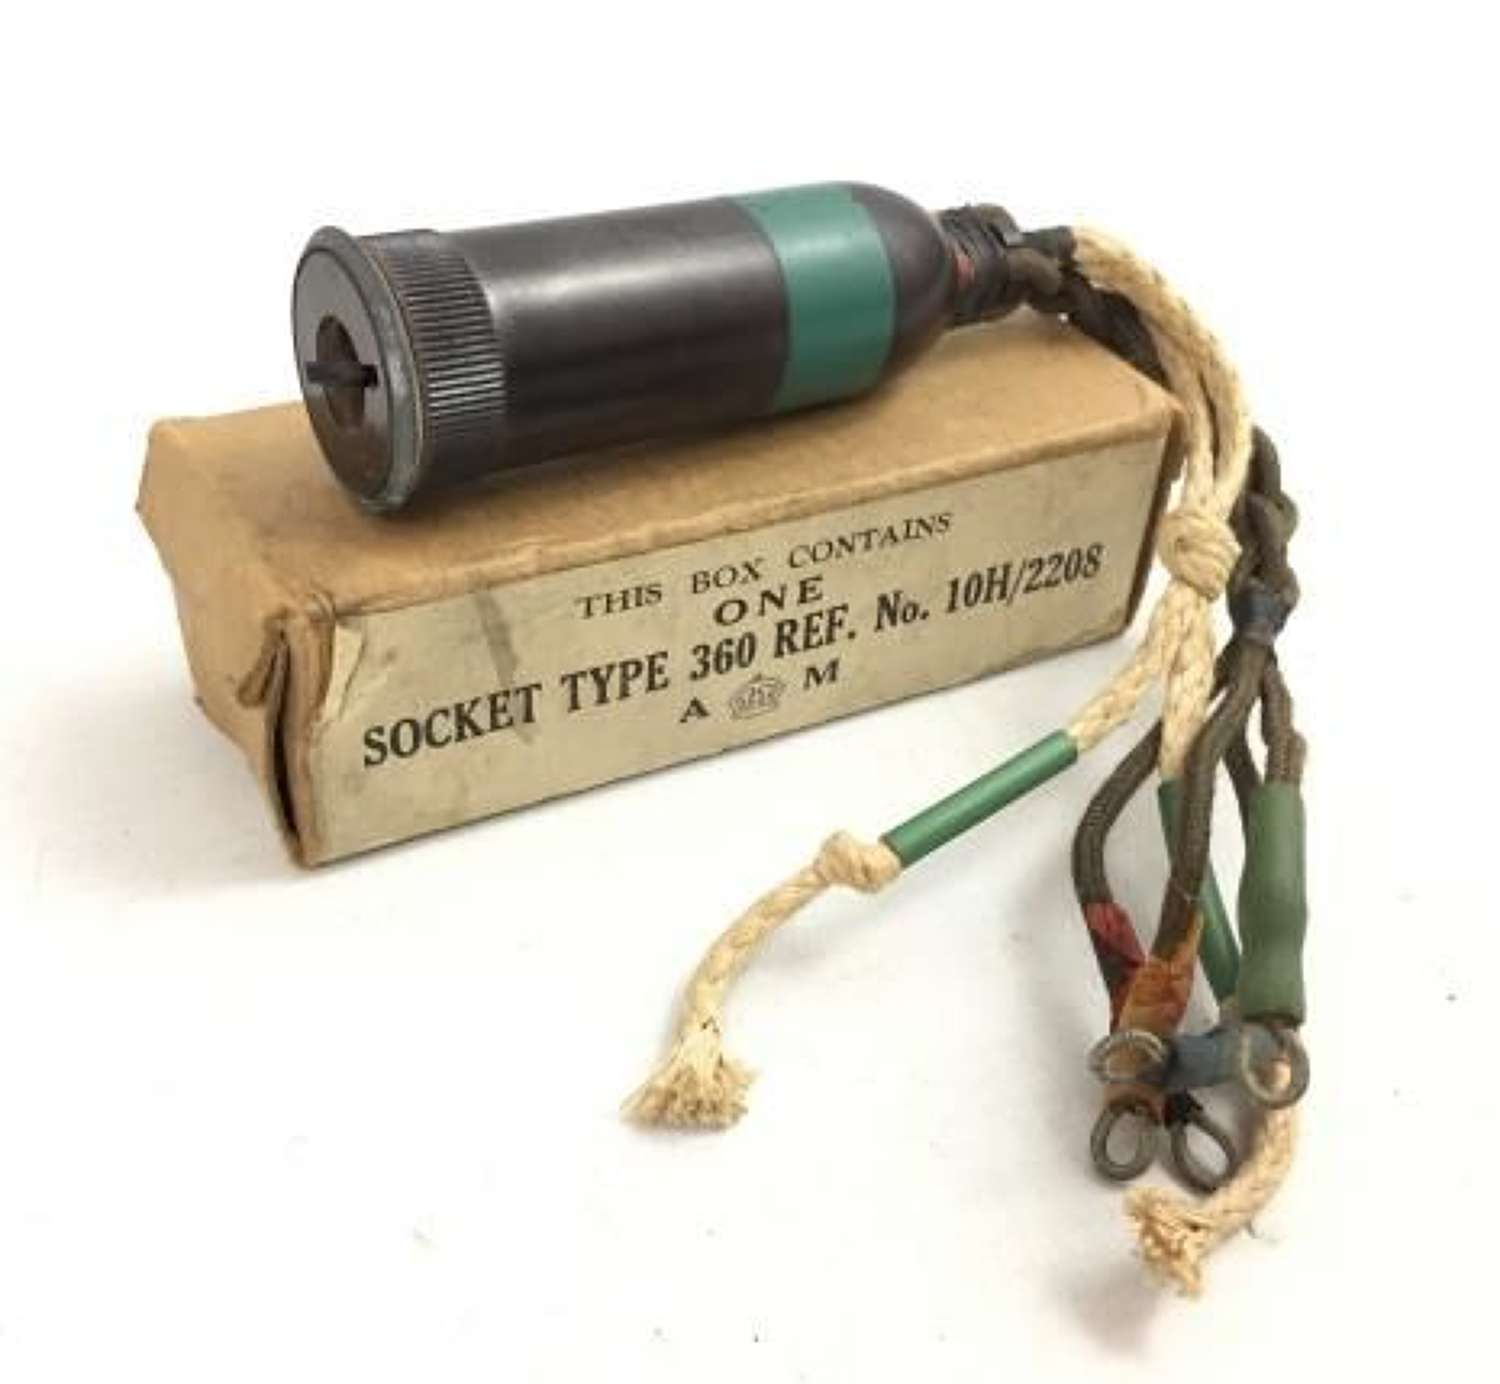 Original RAF Socket Type 360